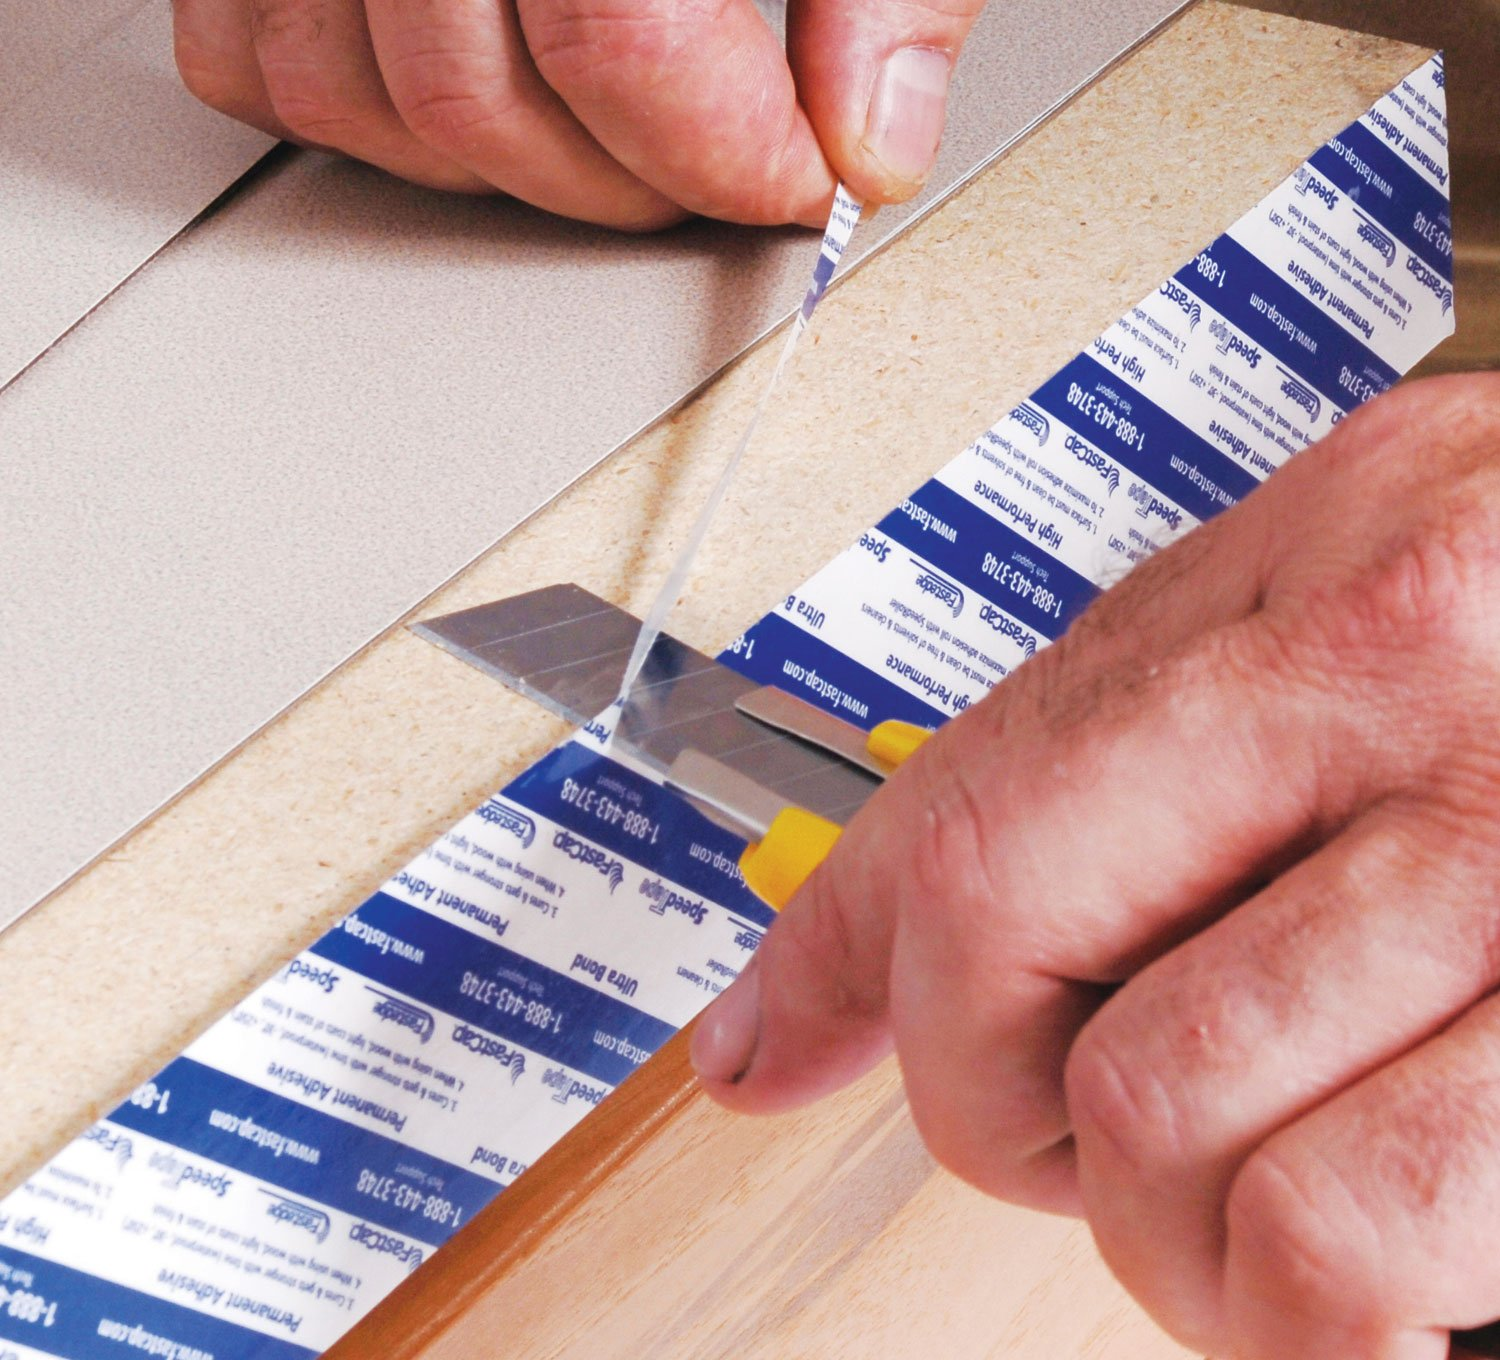 FastCap STAPE.1X50 SpeedTape 1 x 50 Peel and Stick Speed Tapes, 6-Pack by Fastcap (Image #2)